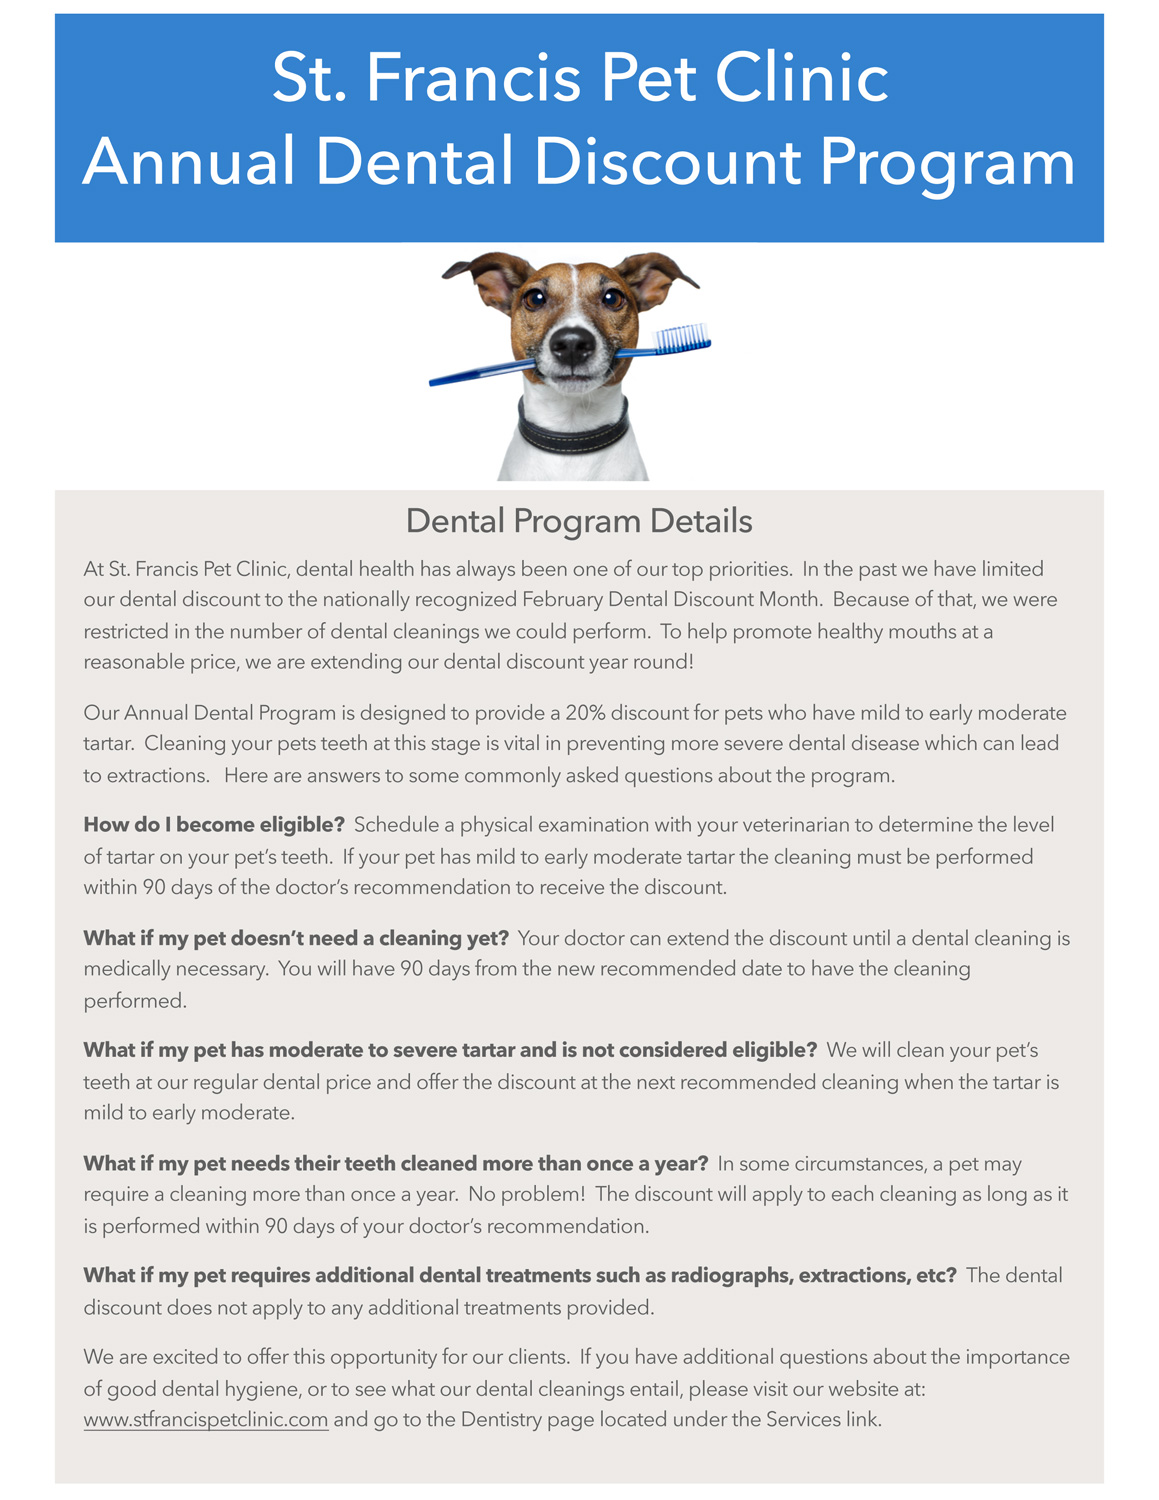 Dental Discount Program